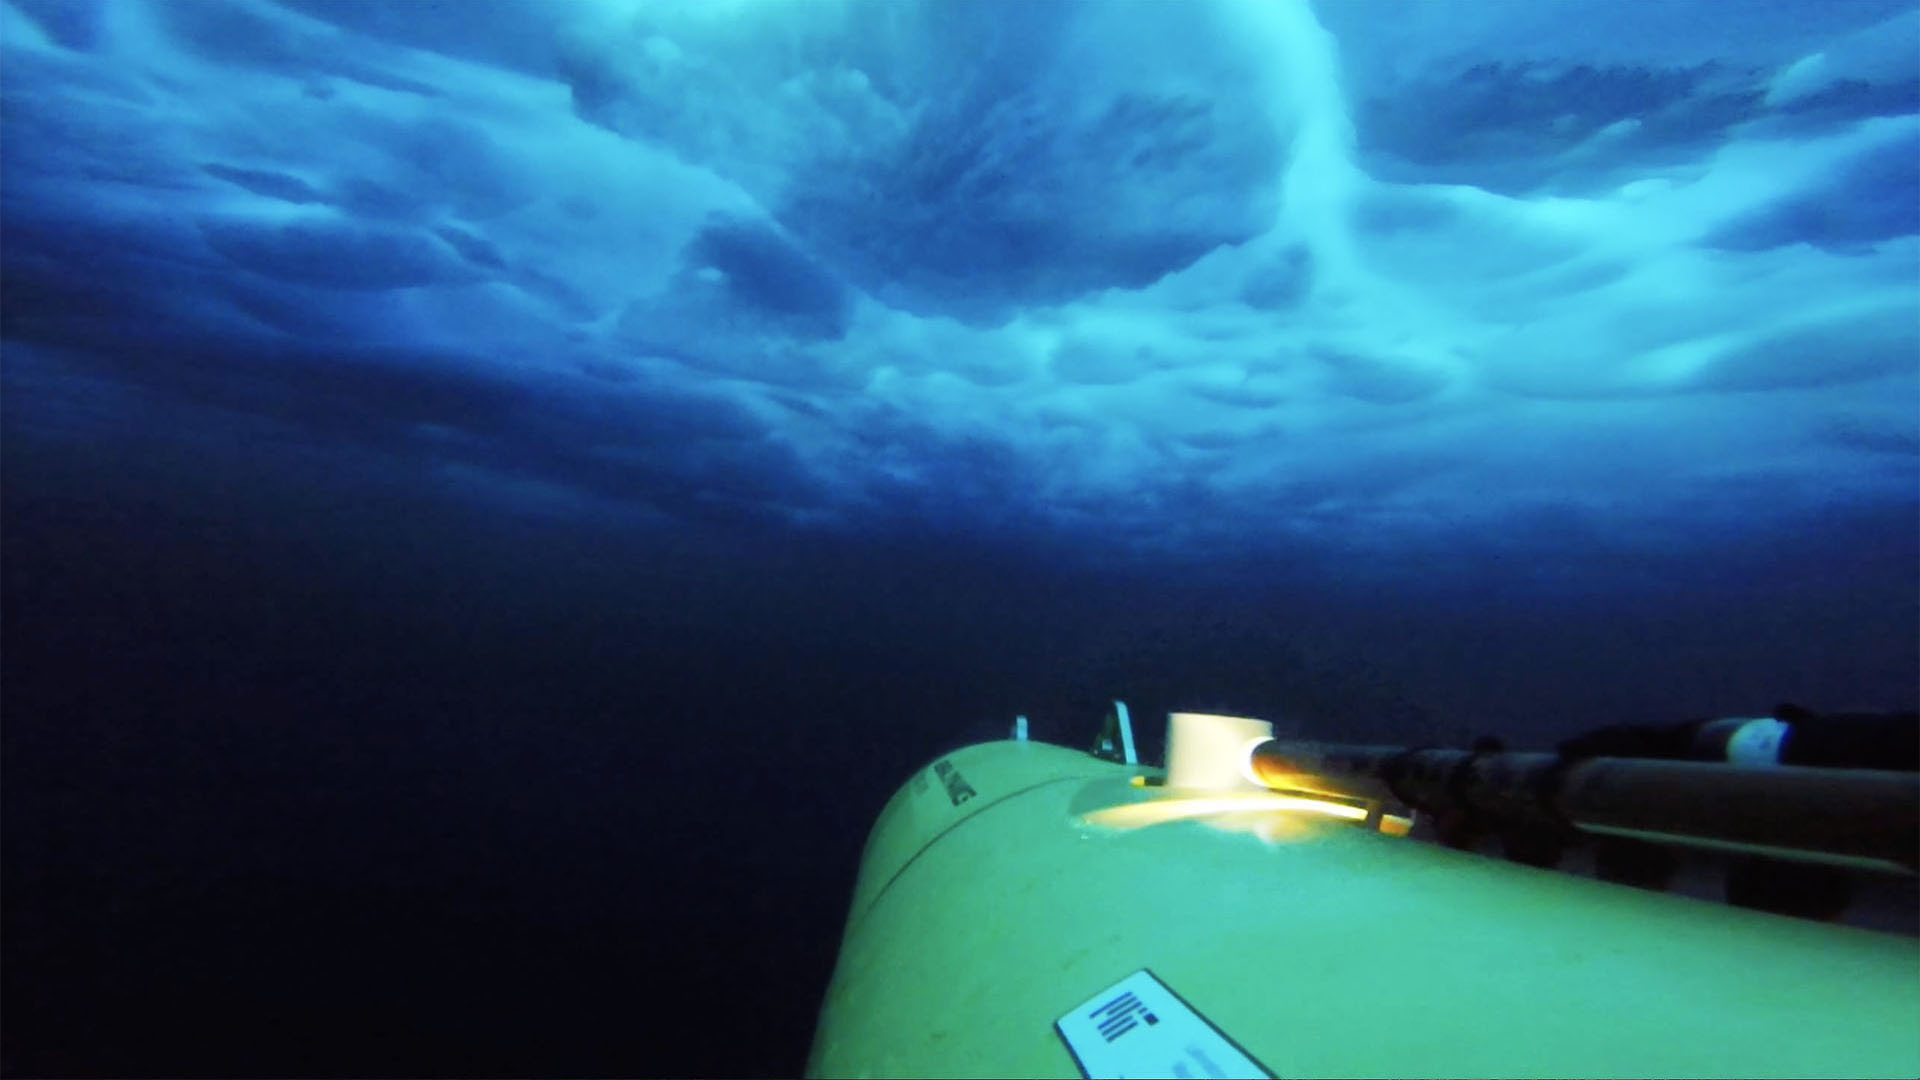 An unmanned autonomous vehicle explores the water under ice in the Arctic.